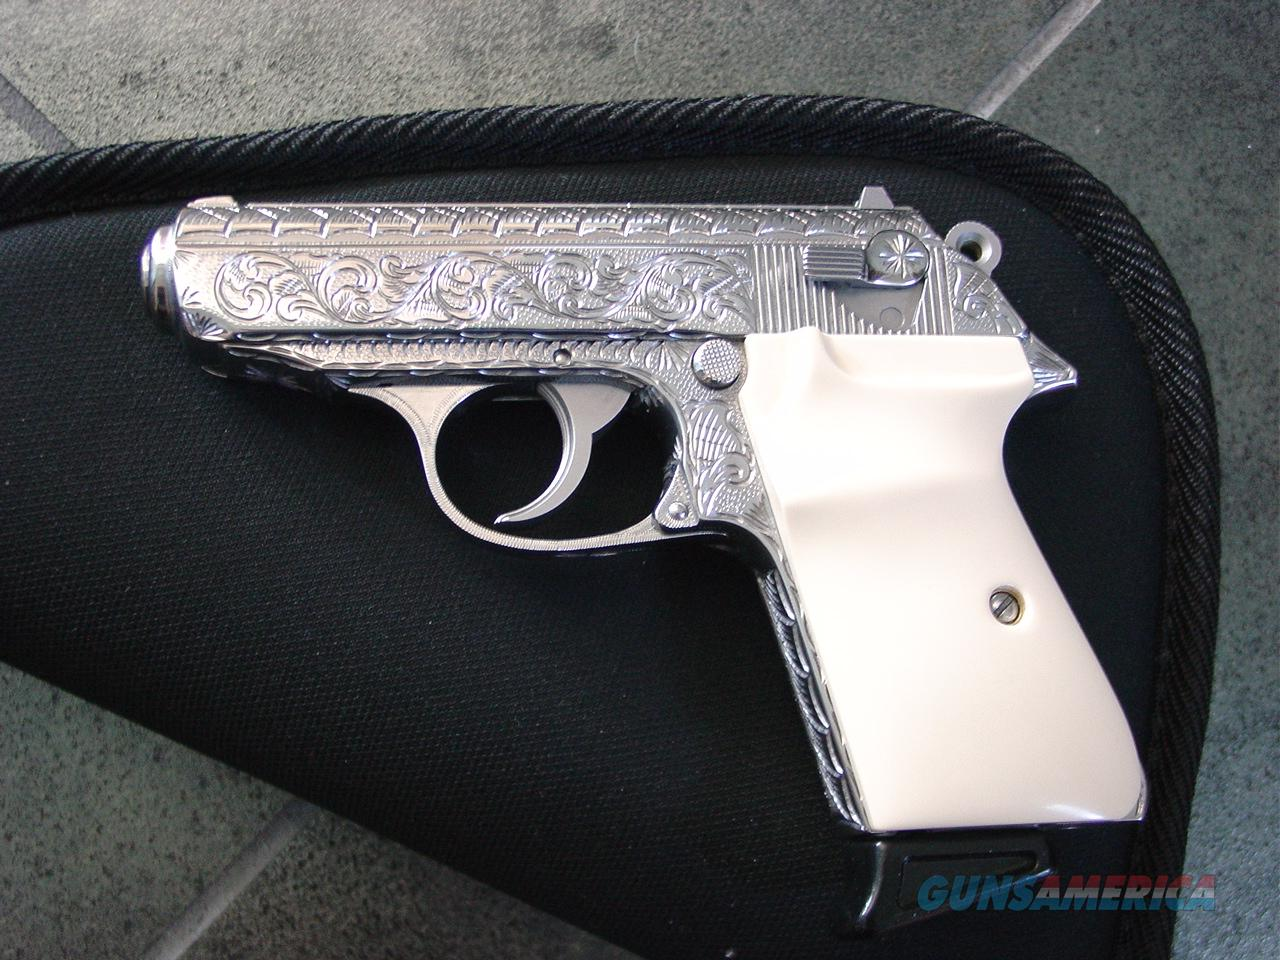 Walther PPK/S-Interarms,fully engraved by Flannery Engraving in scroll & batwing designs,polished stainless,380 auto,1 Walther mag with finger extension,faux ivory grips,-awesome one of a kind !!  Guns > Pistols > Walther Pistols > Post WWII > PPK Series